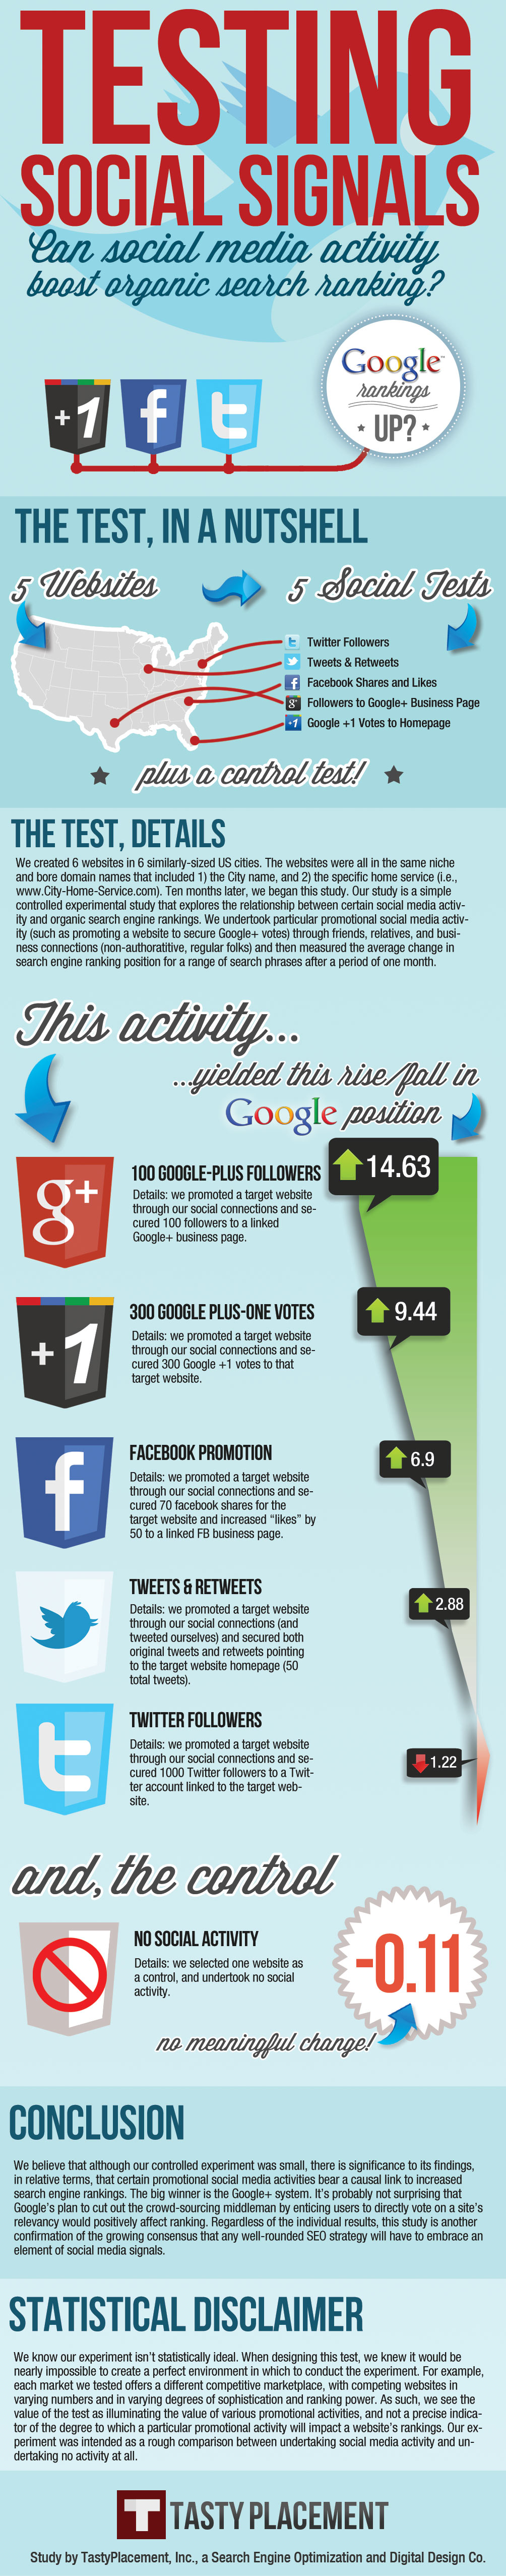 impacto das redes sociais no ranking do google e no e-commerce